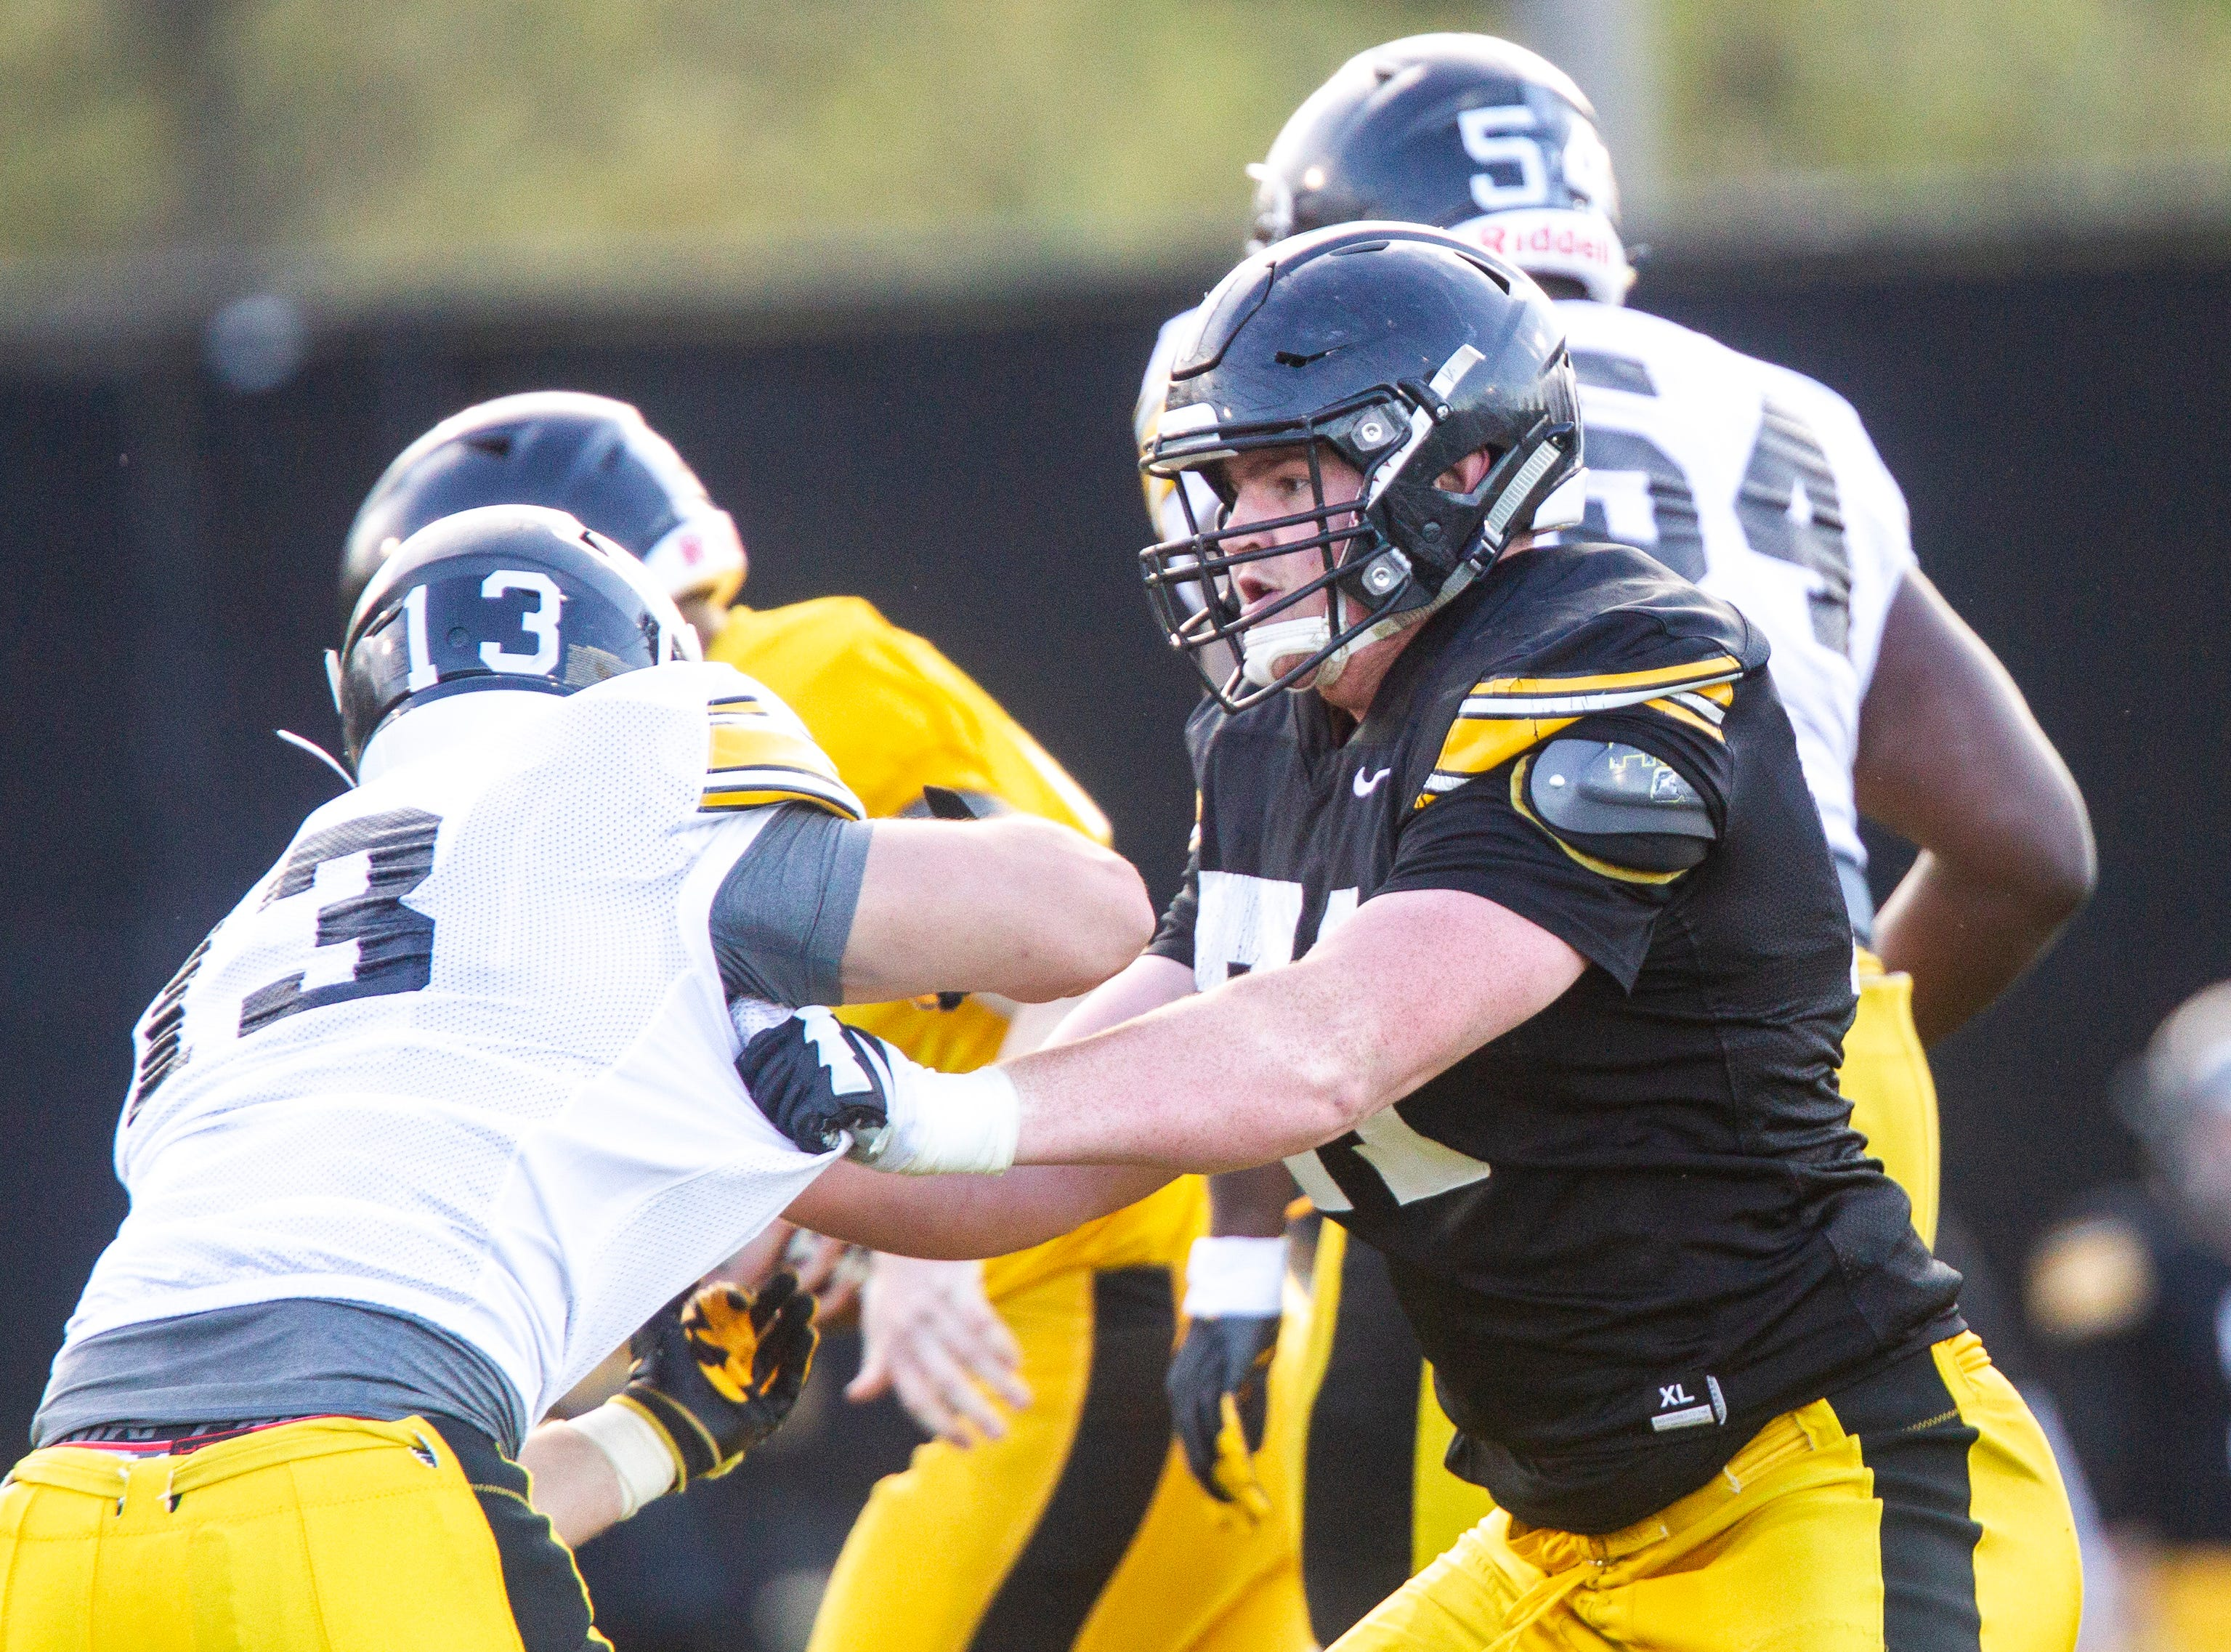 Iowa offensive lineman Mark Kallenberger (71) blocks during the final spring football practice, Friday, April 26, 2019, at the University of Iowa outdoor practice facility in Iowa City, Iowa.